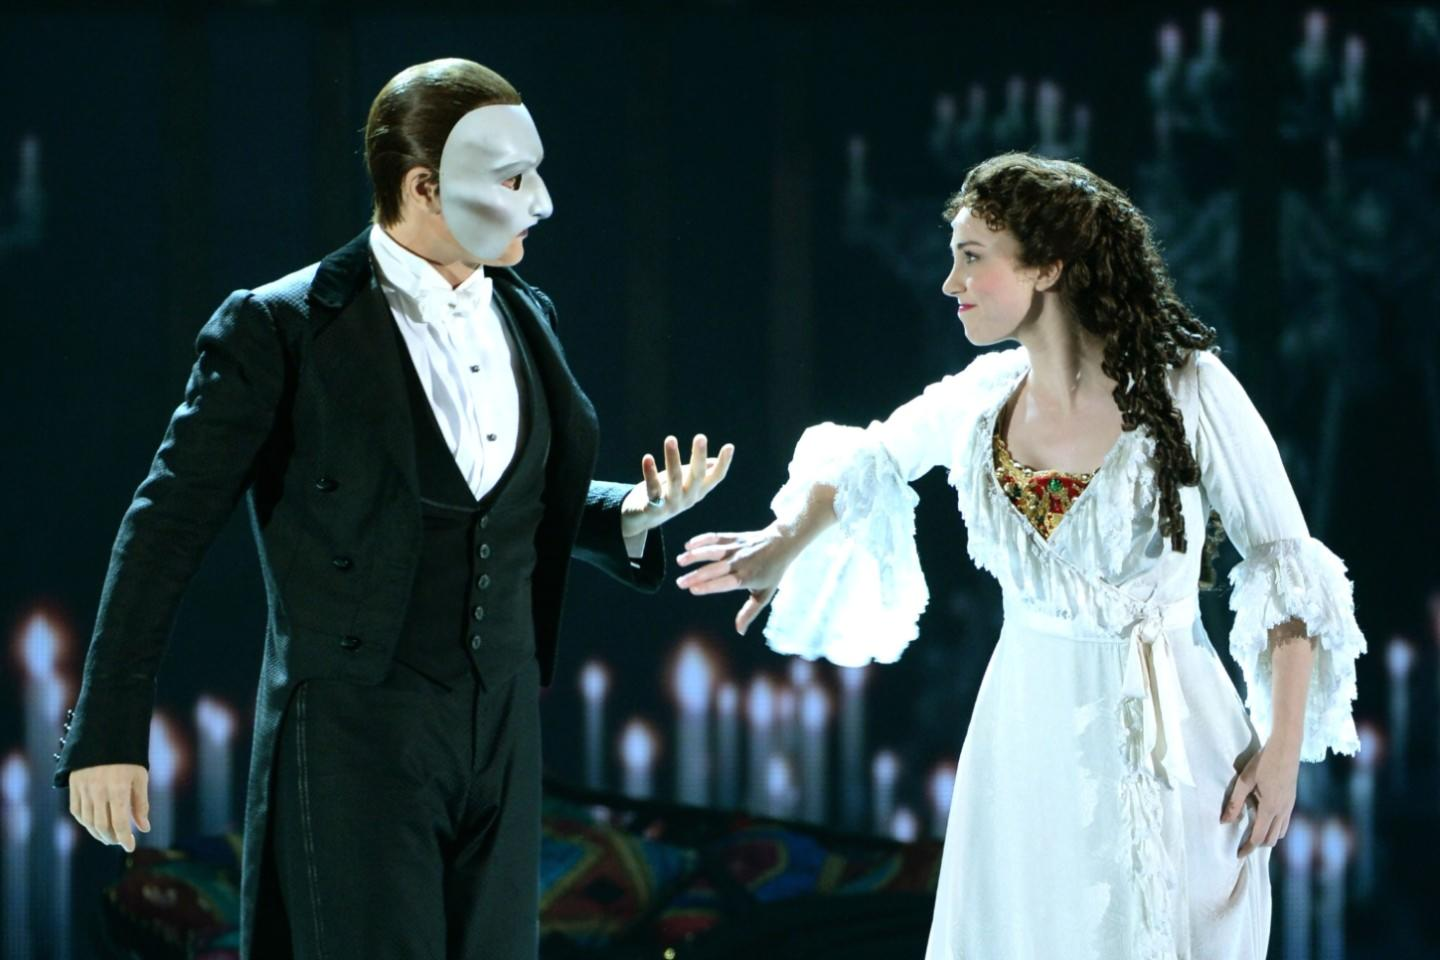 Phantom of the Opera - Tour Tickets - Buy and Sell Tickets